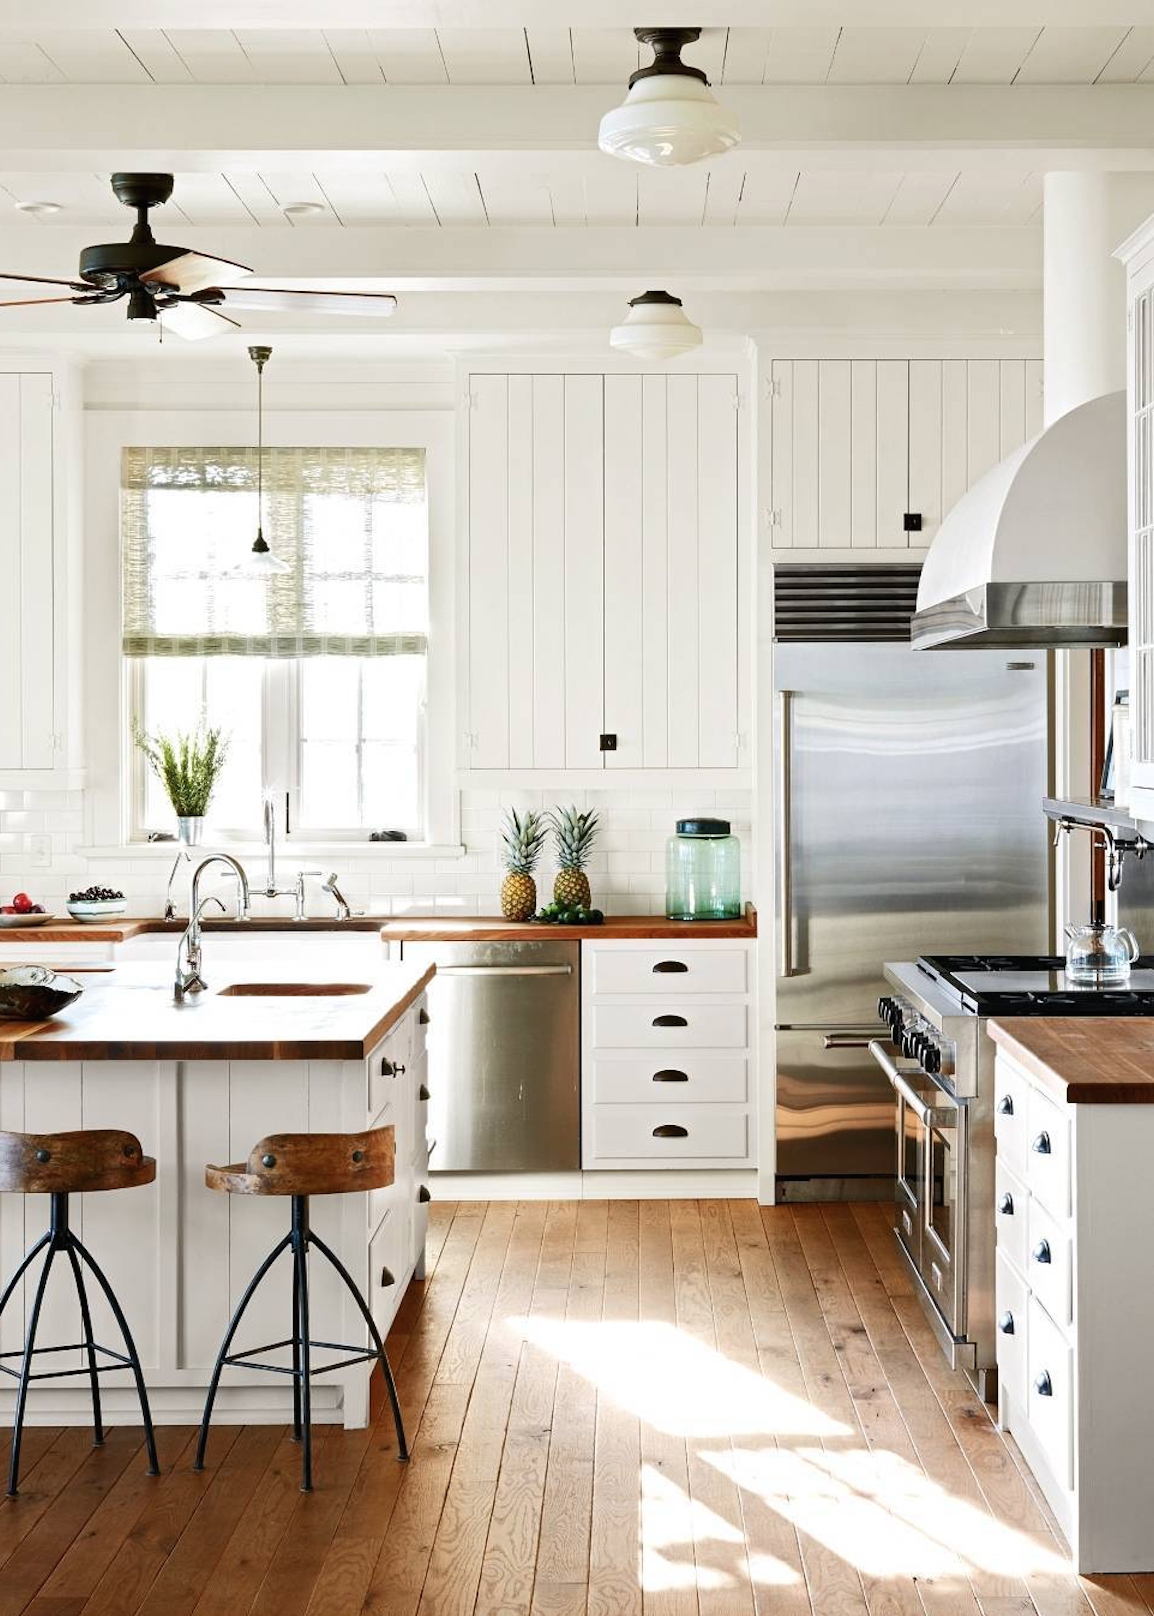 Classic Farmhouse Kitchen With Wood Countertops Via Coco Kelley Wood Countertops Kitchen Farmhouse Kitchen Design Kitchen Cabinet Design